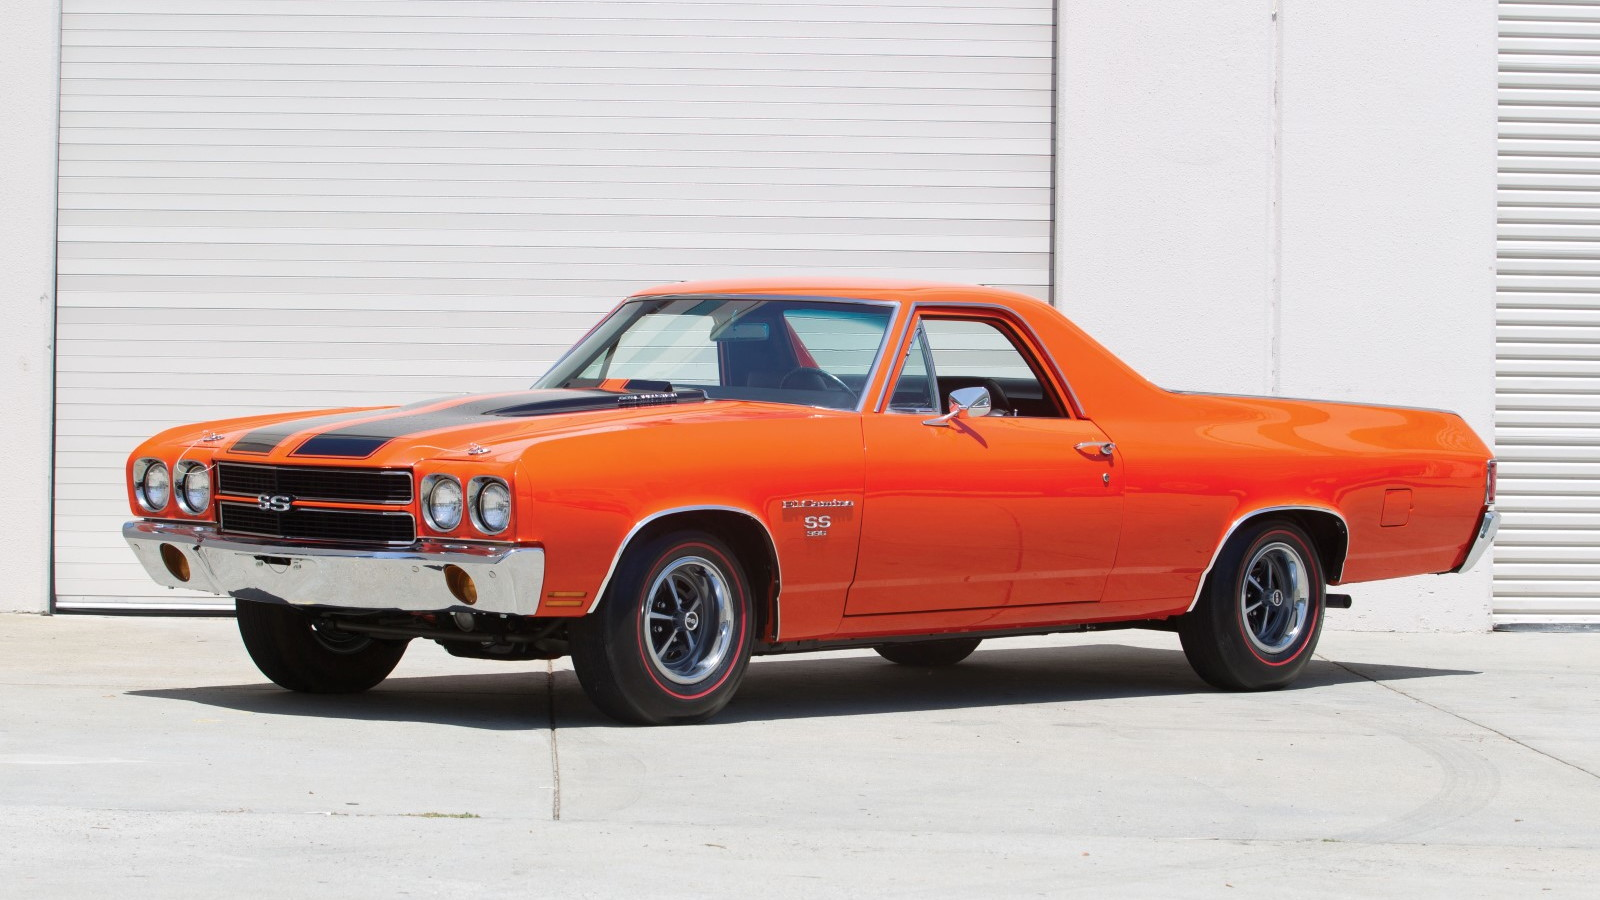 1970 Chevrolet El Camino once owned by Steve McQueen (Image: Auctions America)